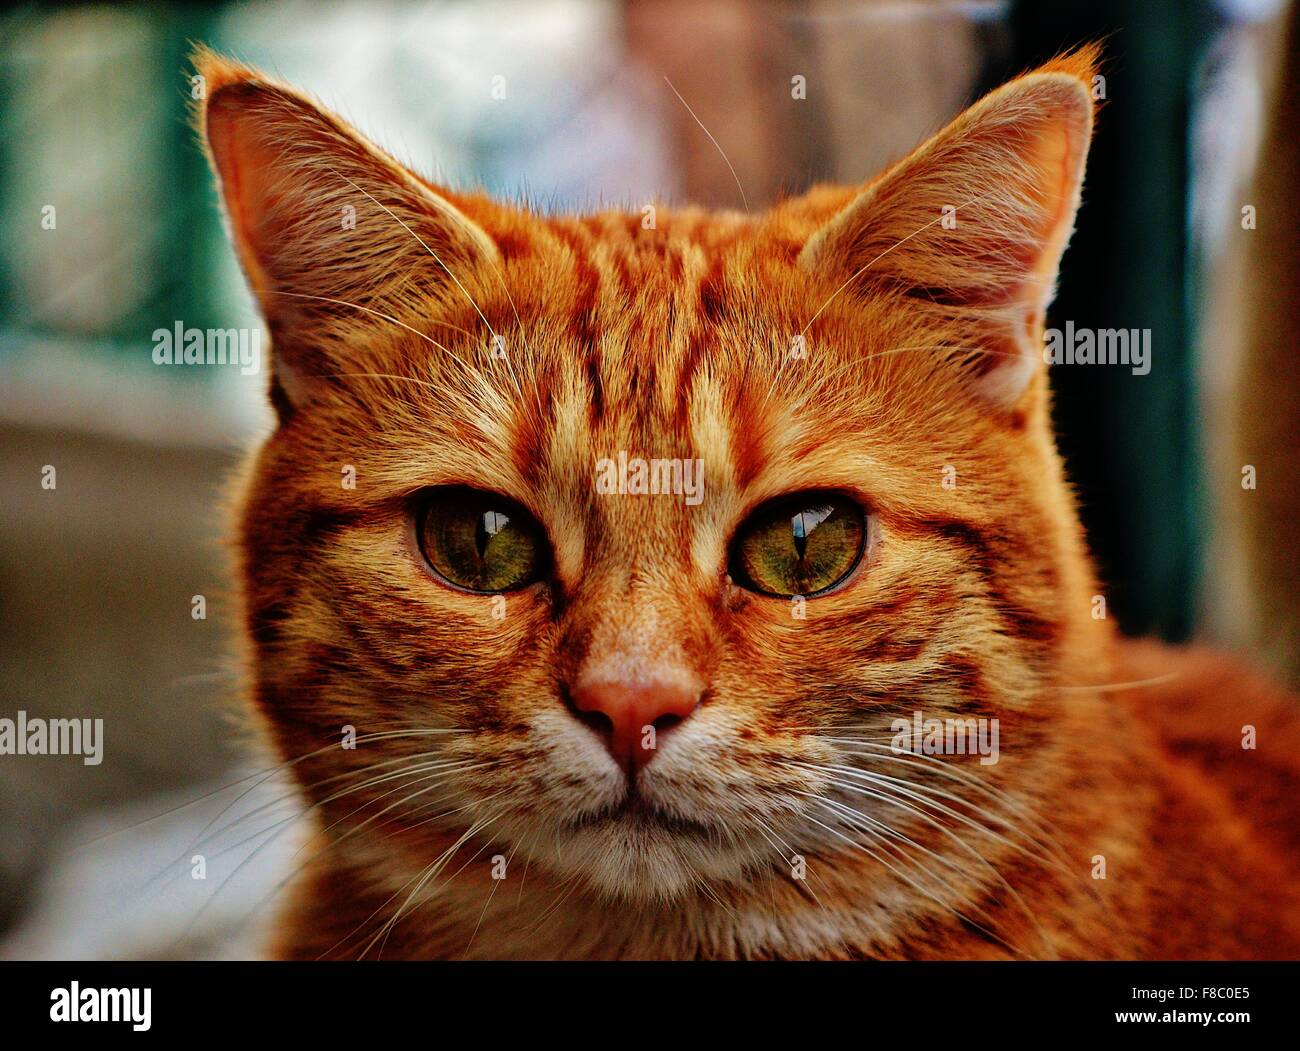 Portrait of a ginger tabby cat outside - Stock Image